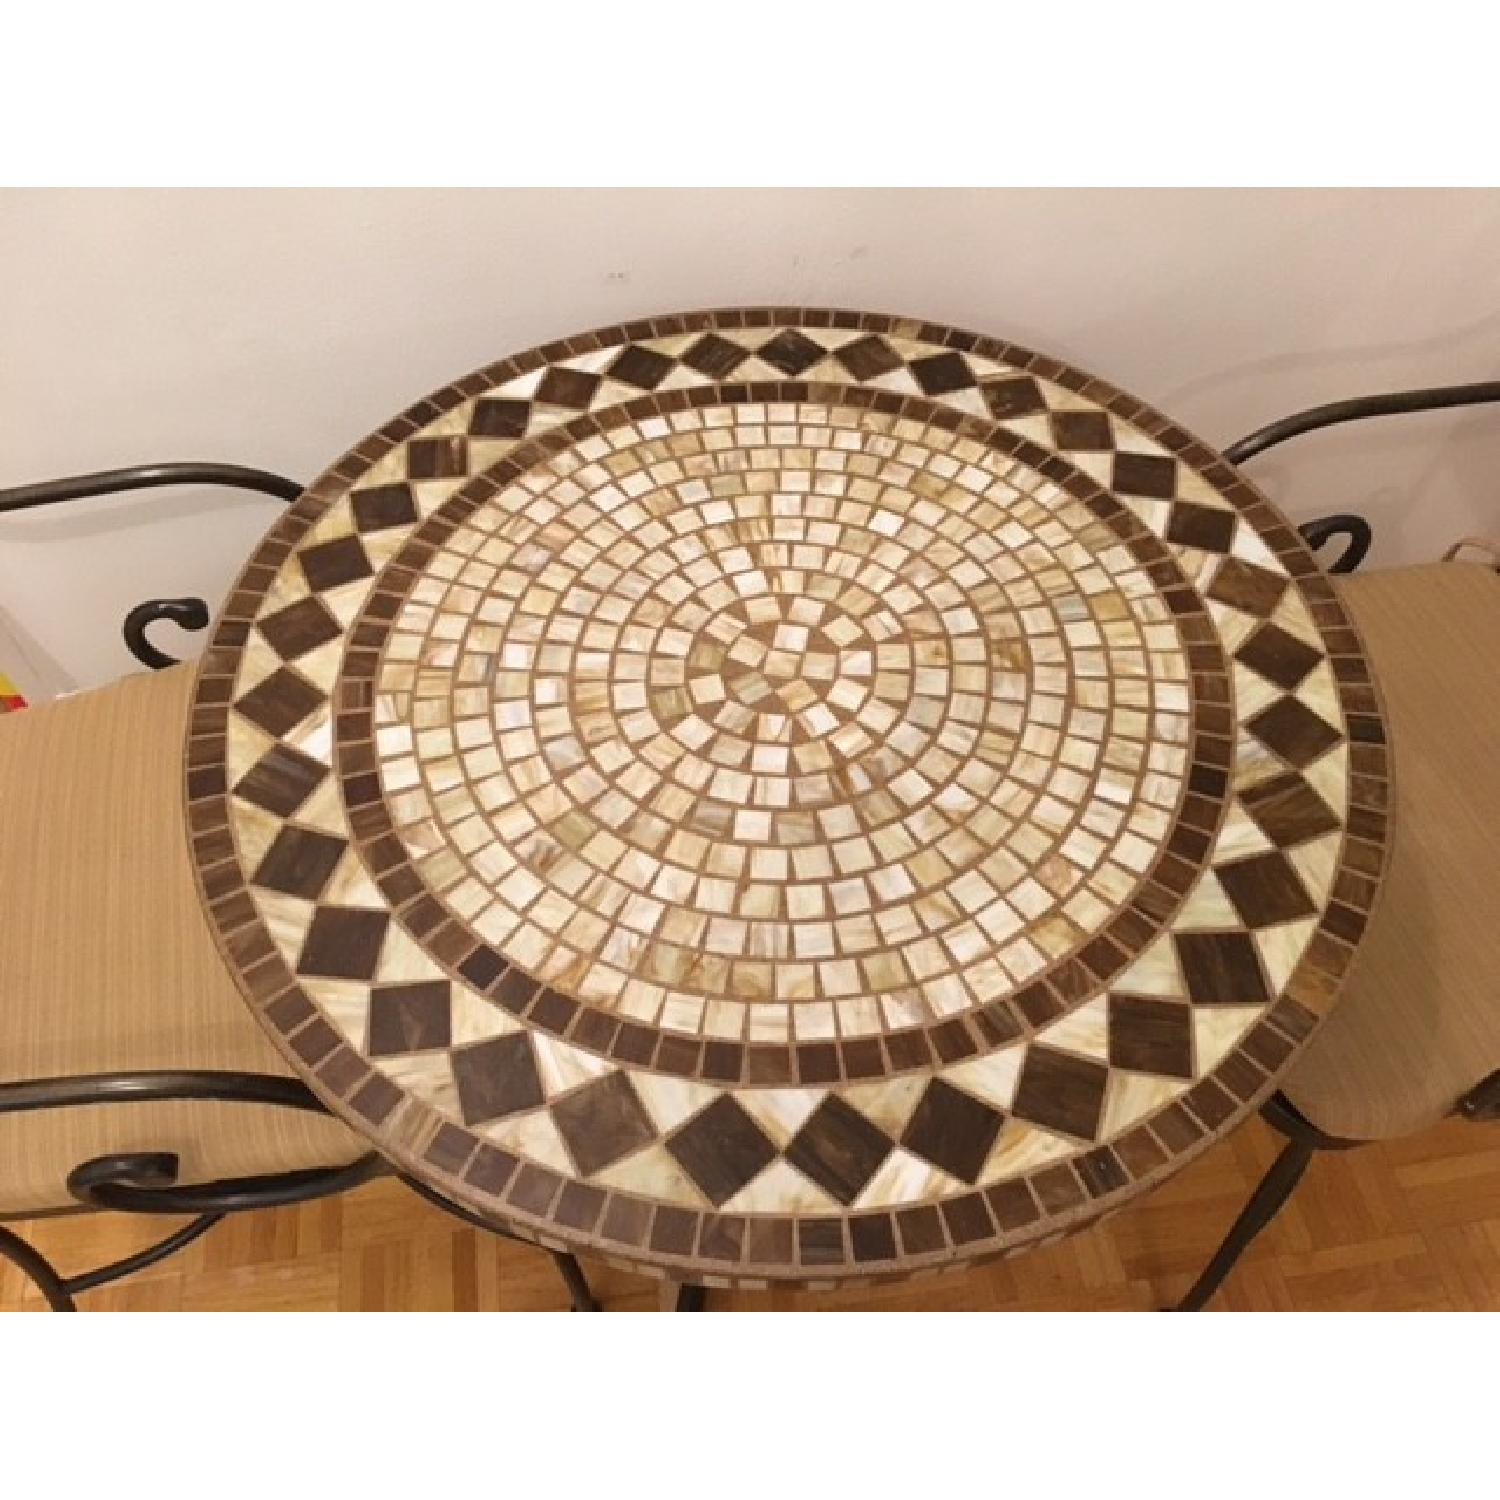 Mosaic Patio Table w/ 2 Chairs - image-3